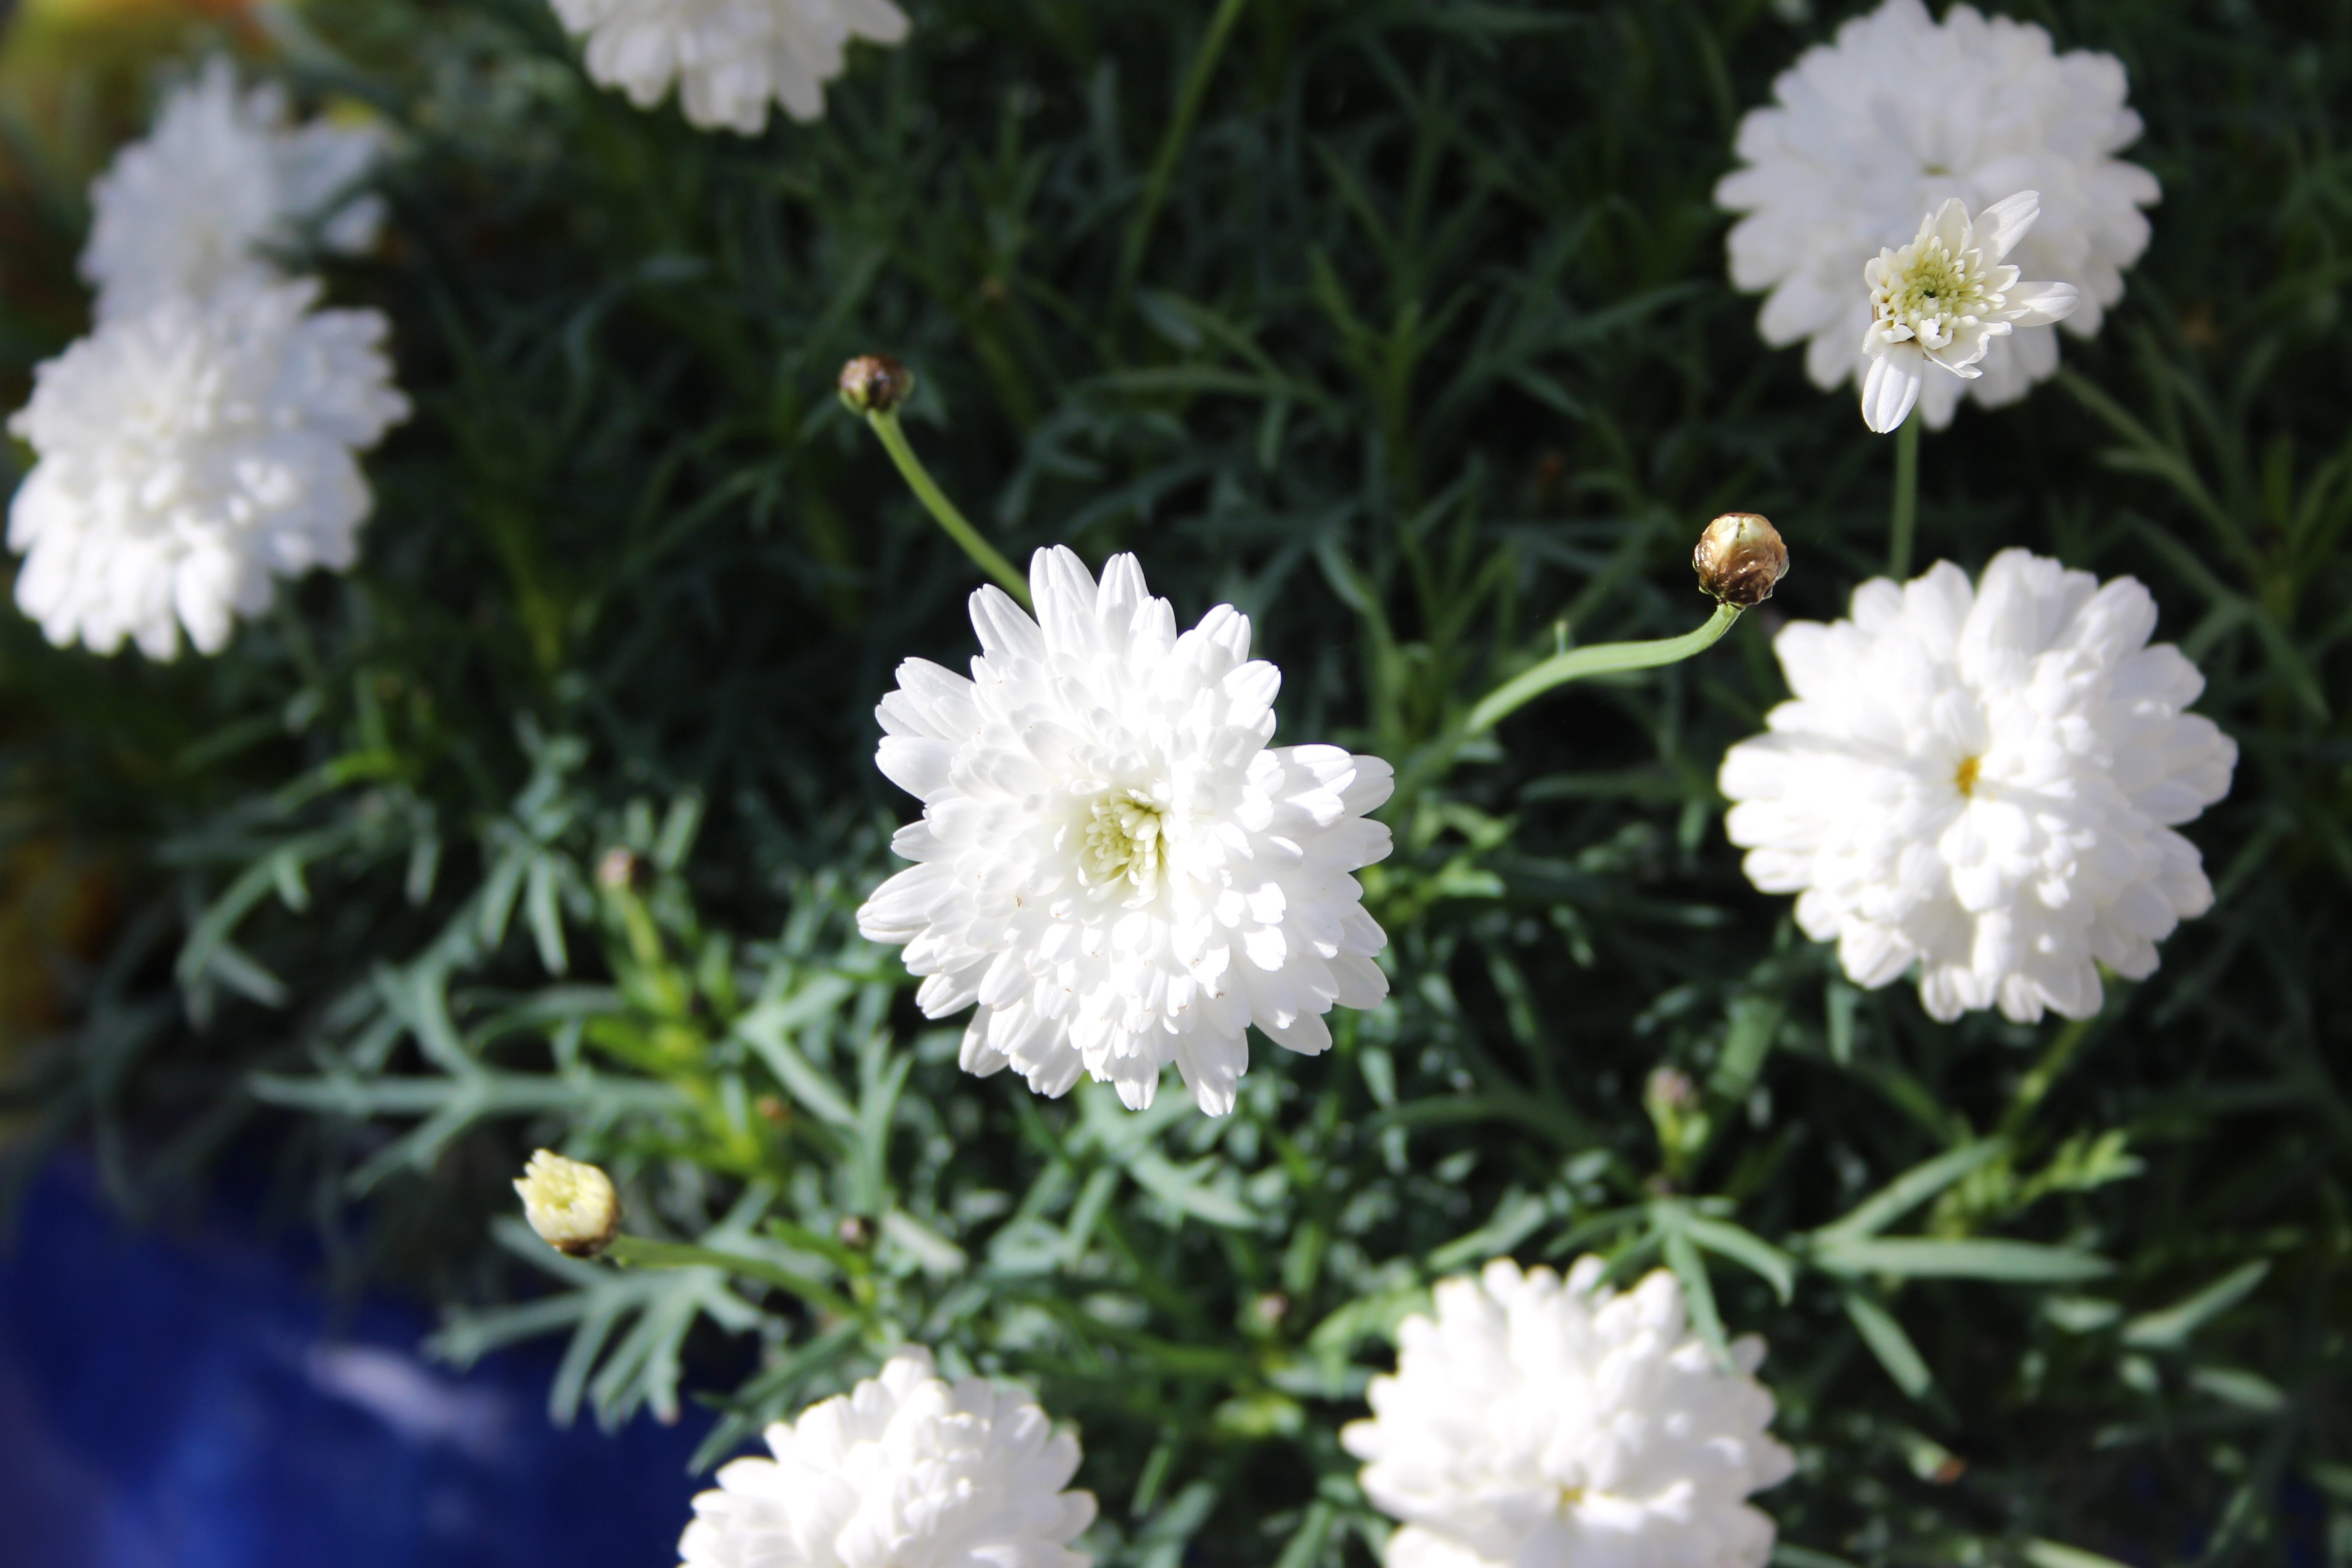 Top six november blooms words and herbs cath at absent gardener suggested it is an argyranthemum but the lack of a yellow centre is keeping me searching for the exact name mightylinksfo